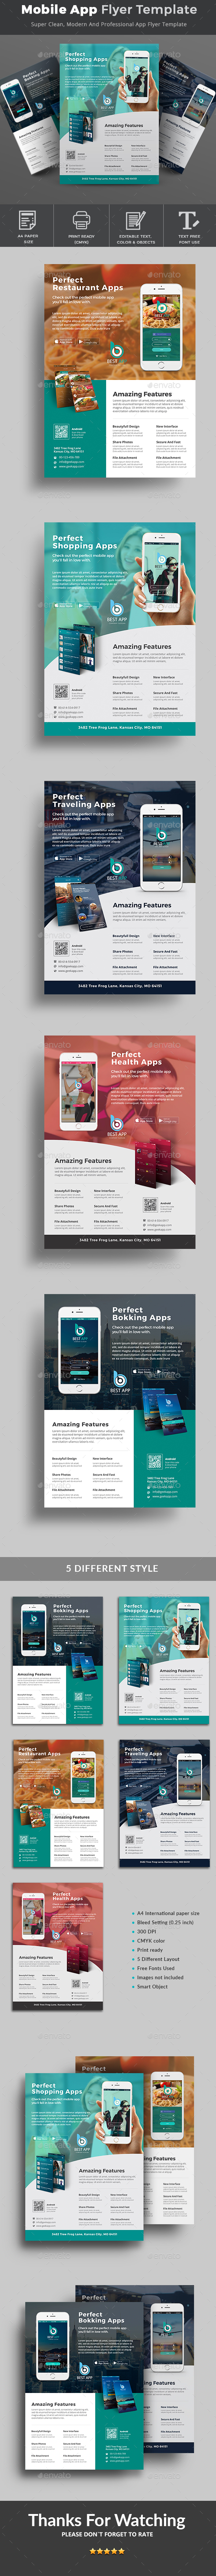 Mobile App Flyer Template - Flyers Print Templates